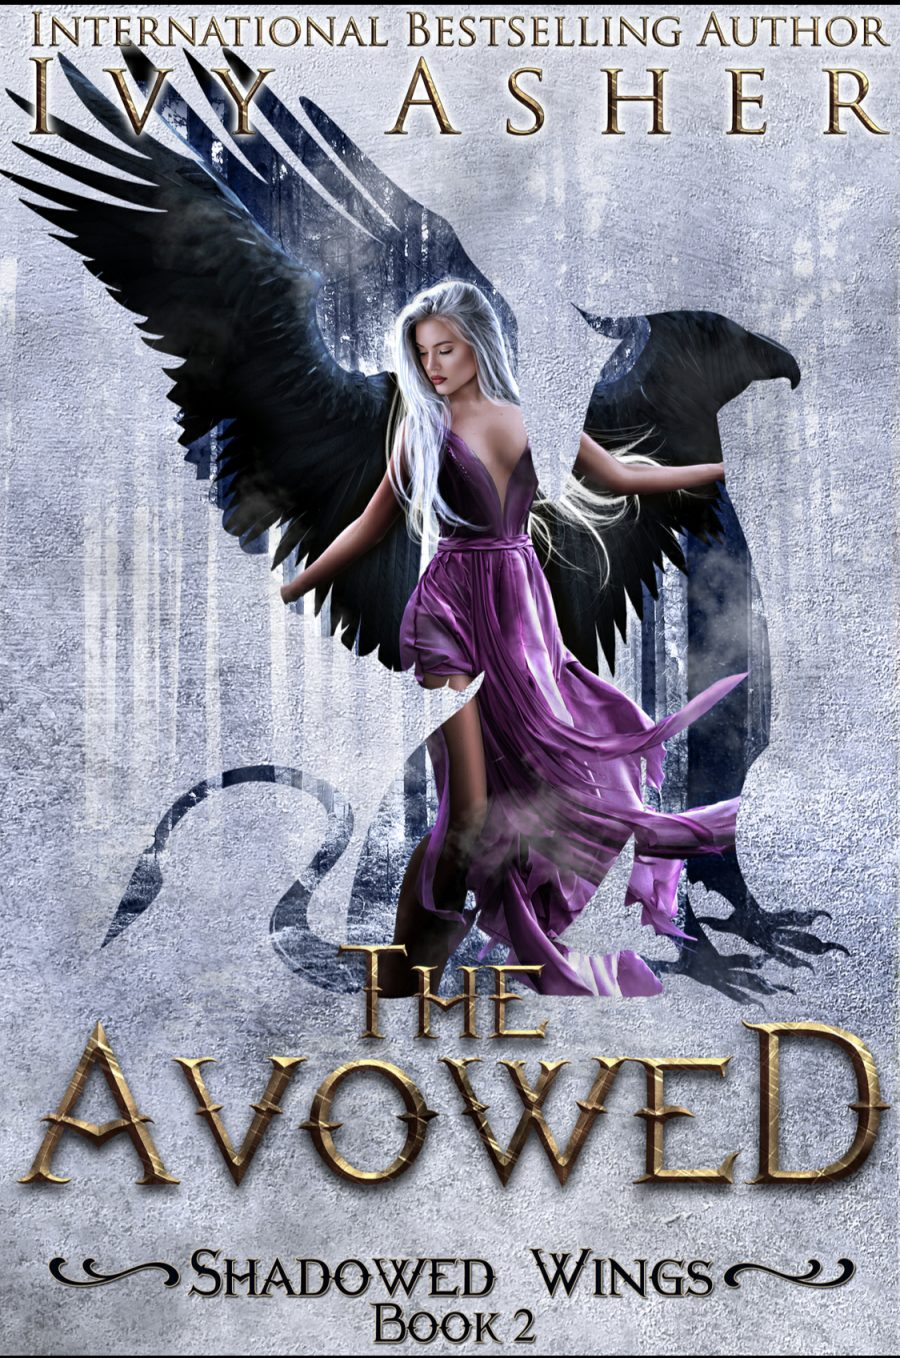 The Avowed by Ivy Asher - A Book Review #BookReview #5Stars #Book2 #Fantasy #RH #MediumBurn #ReverseHarem #WhyChoose #Gryphons #KindleUnlimited #KU